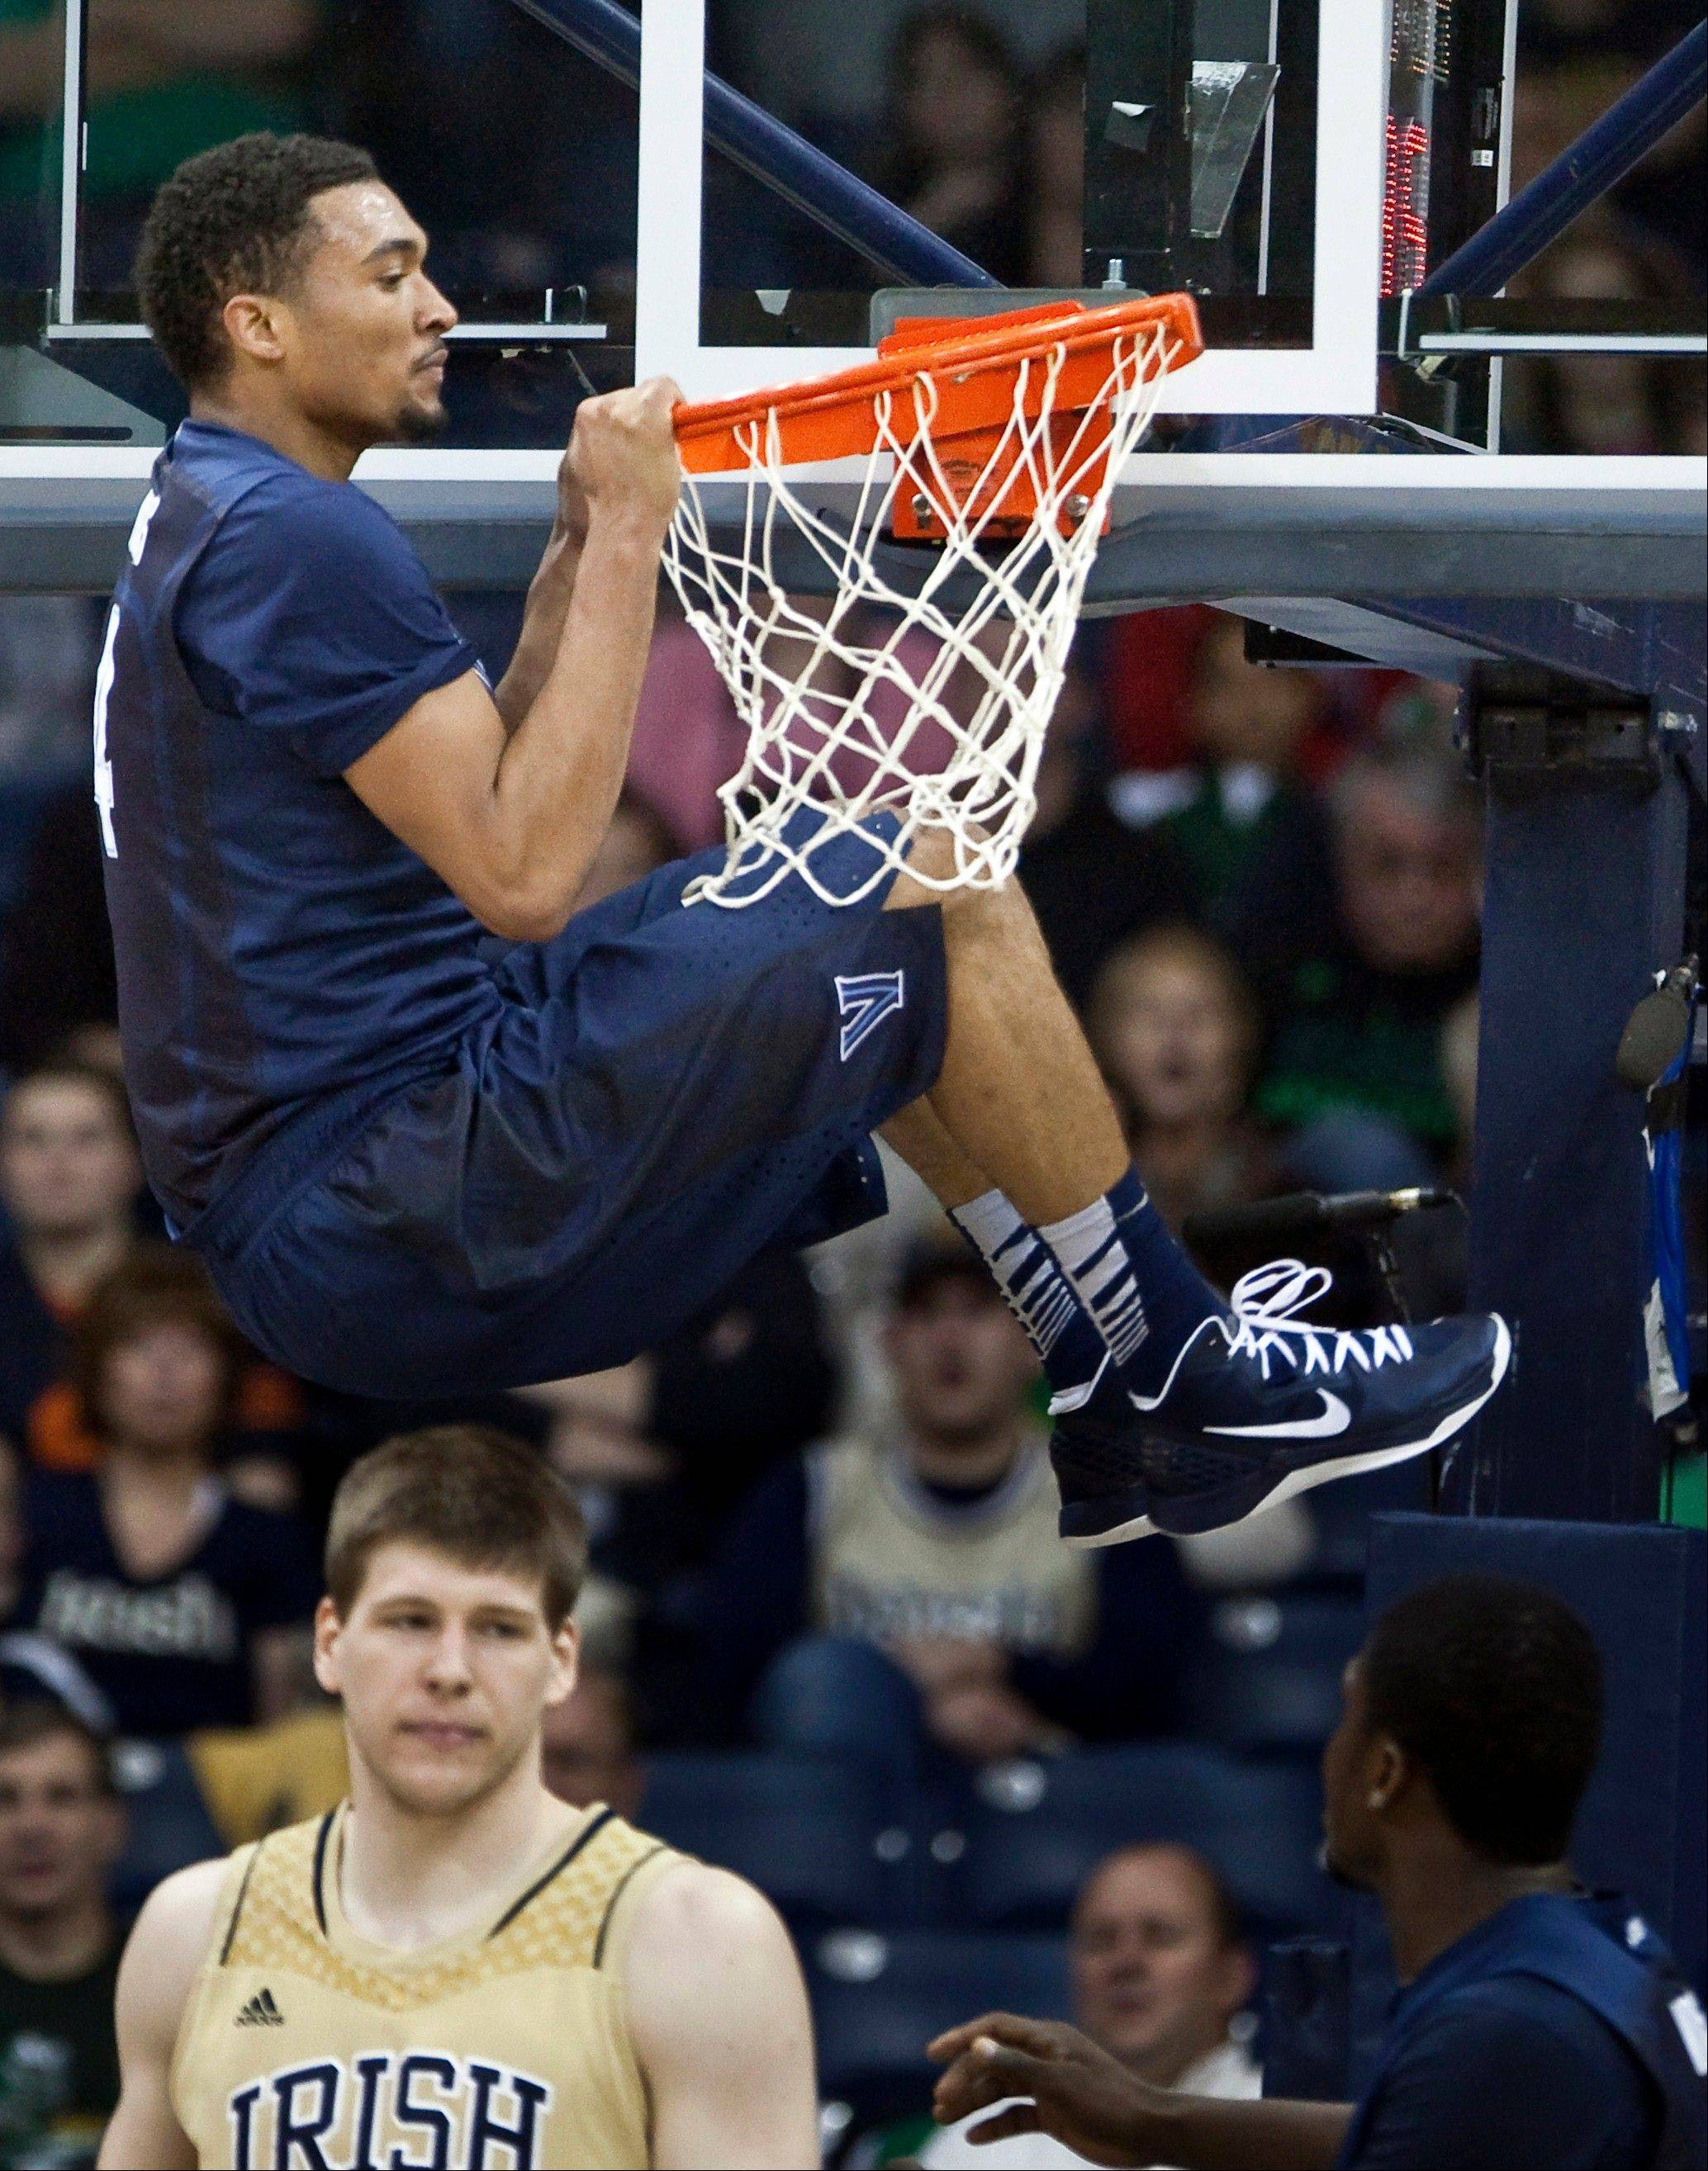 Villanova�s Darrun Hilliard hangs on the rim following a dunk against Notre Dame Wednesday night in South Bend. Notre Dame beat Villa Nova 65-60.